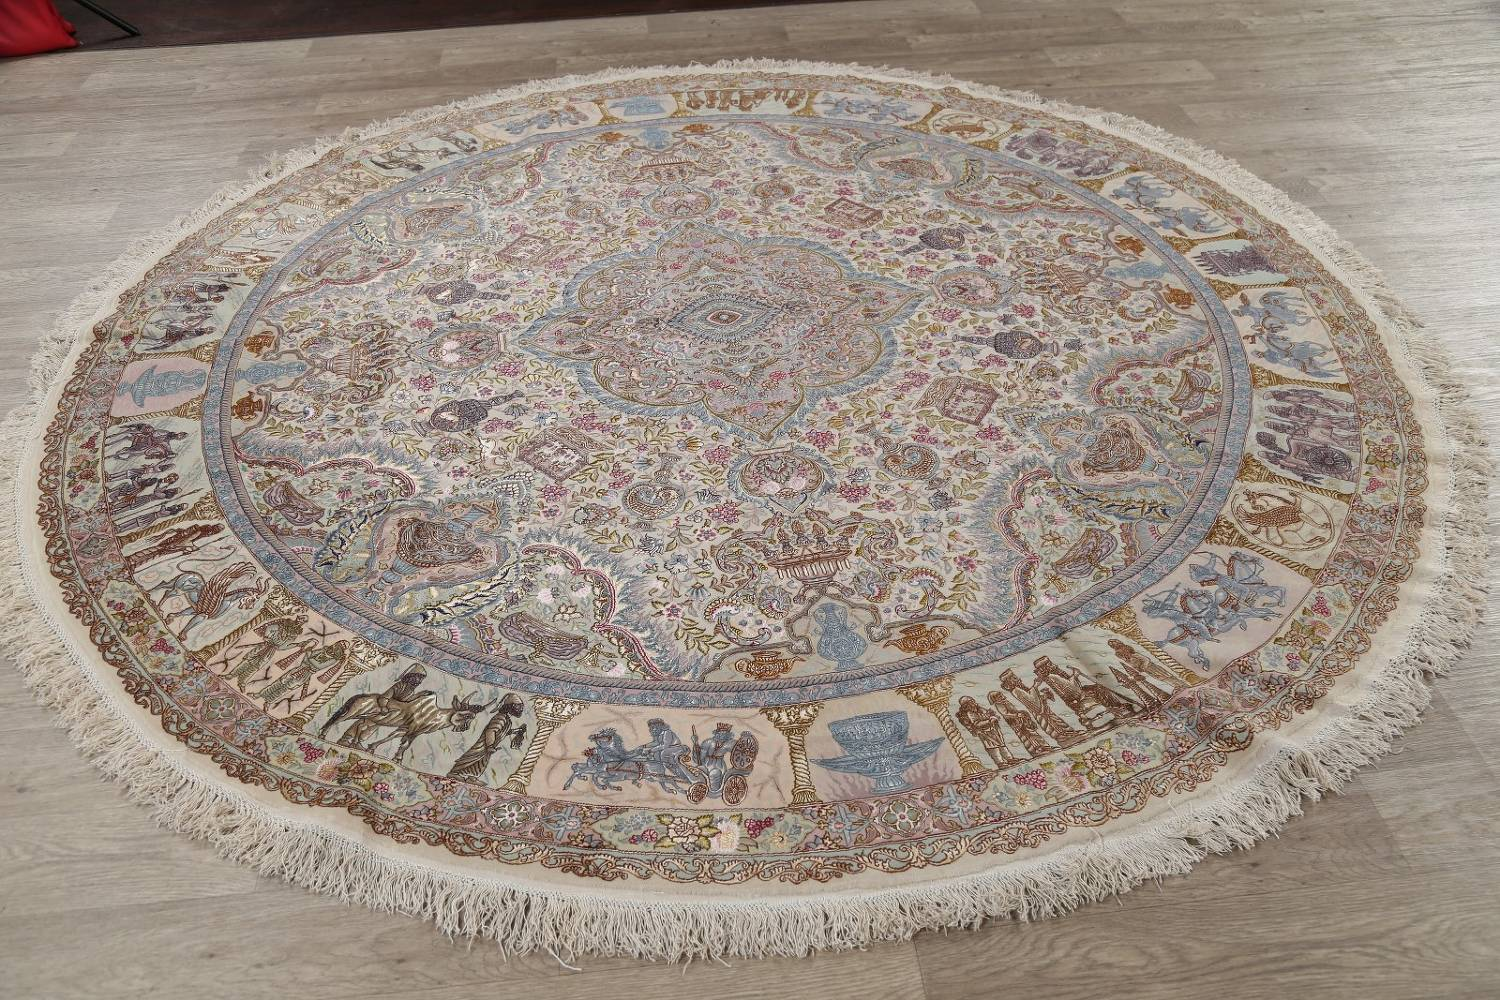 Antique Vegetable Dye Tabriz Persian Hand-Knotted 8x8 Wool Silk Round Rug image 15